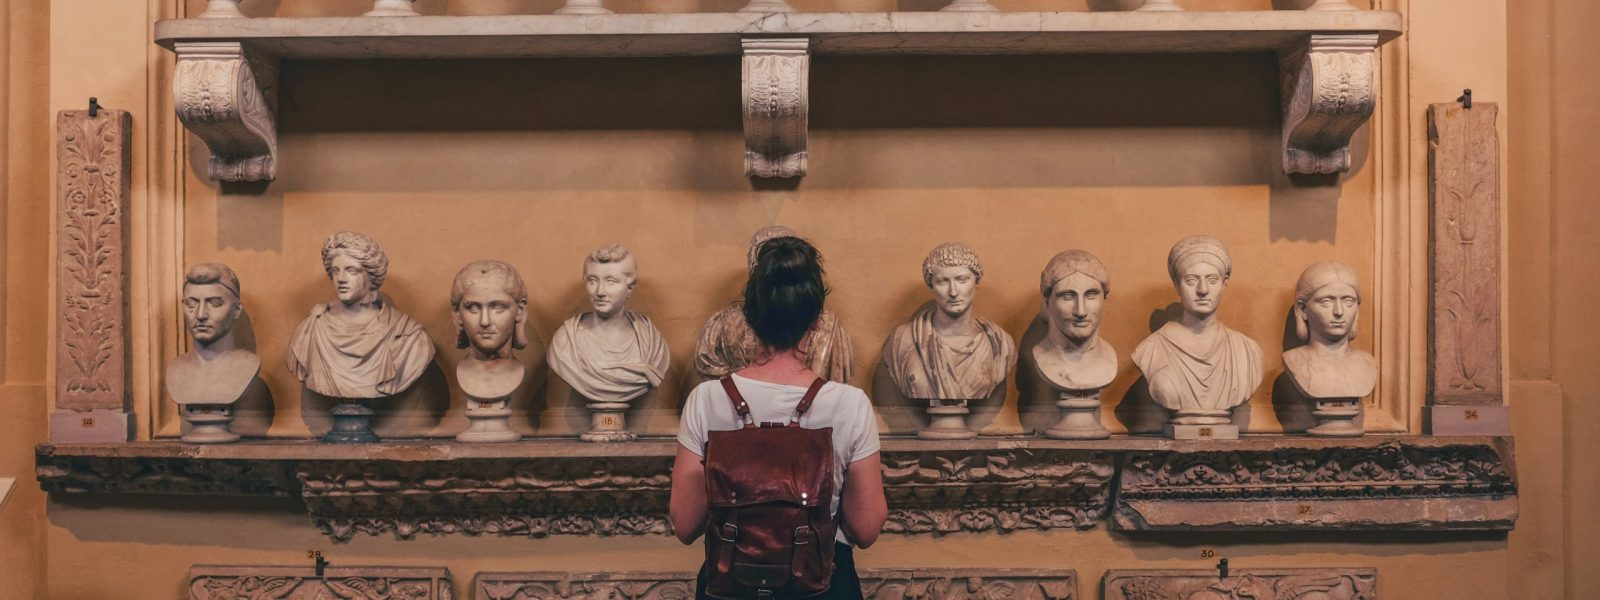 Museums in Rome: 10 praktische tips (sla de rijen over!)